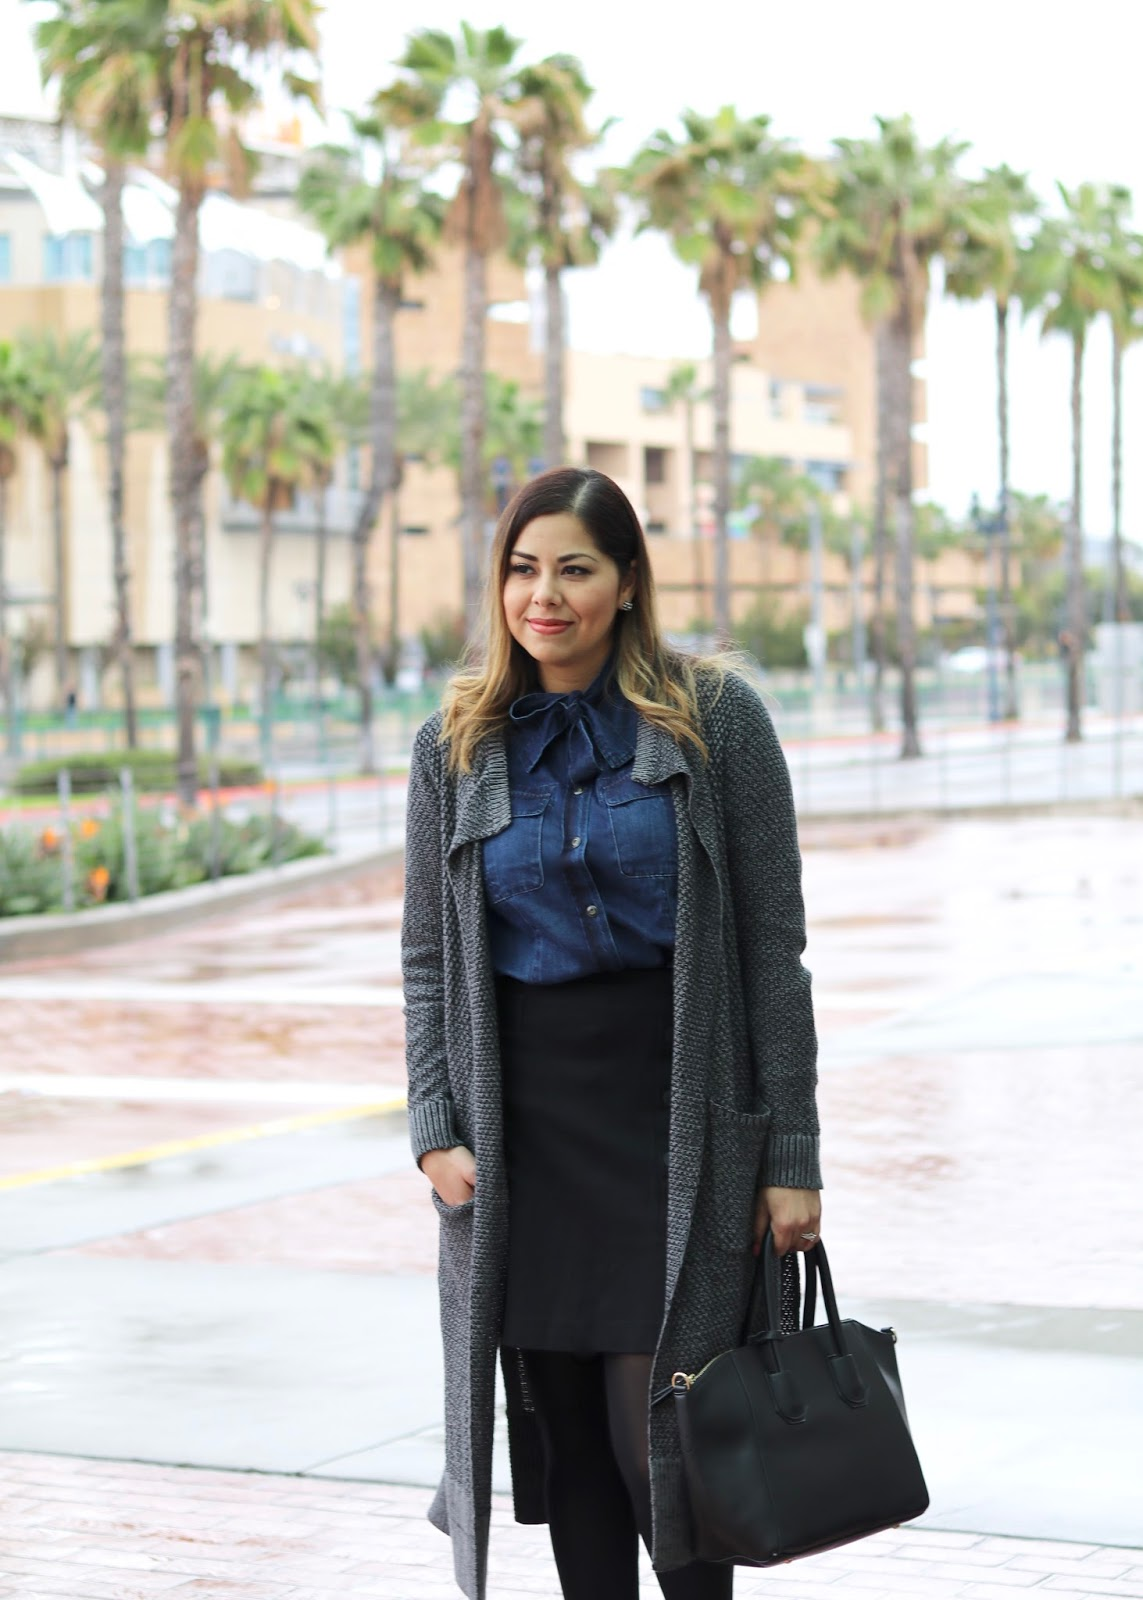 san diego chic blogger, chic outfit in winter, chic outfit in fall